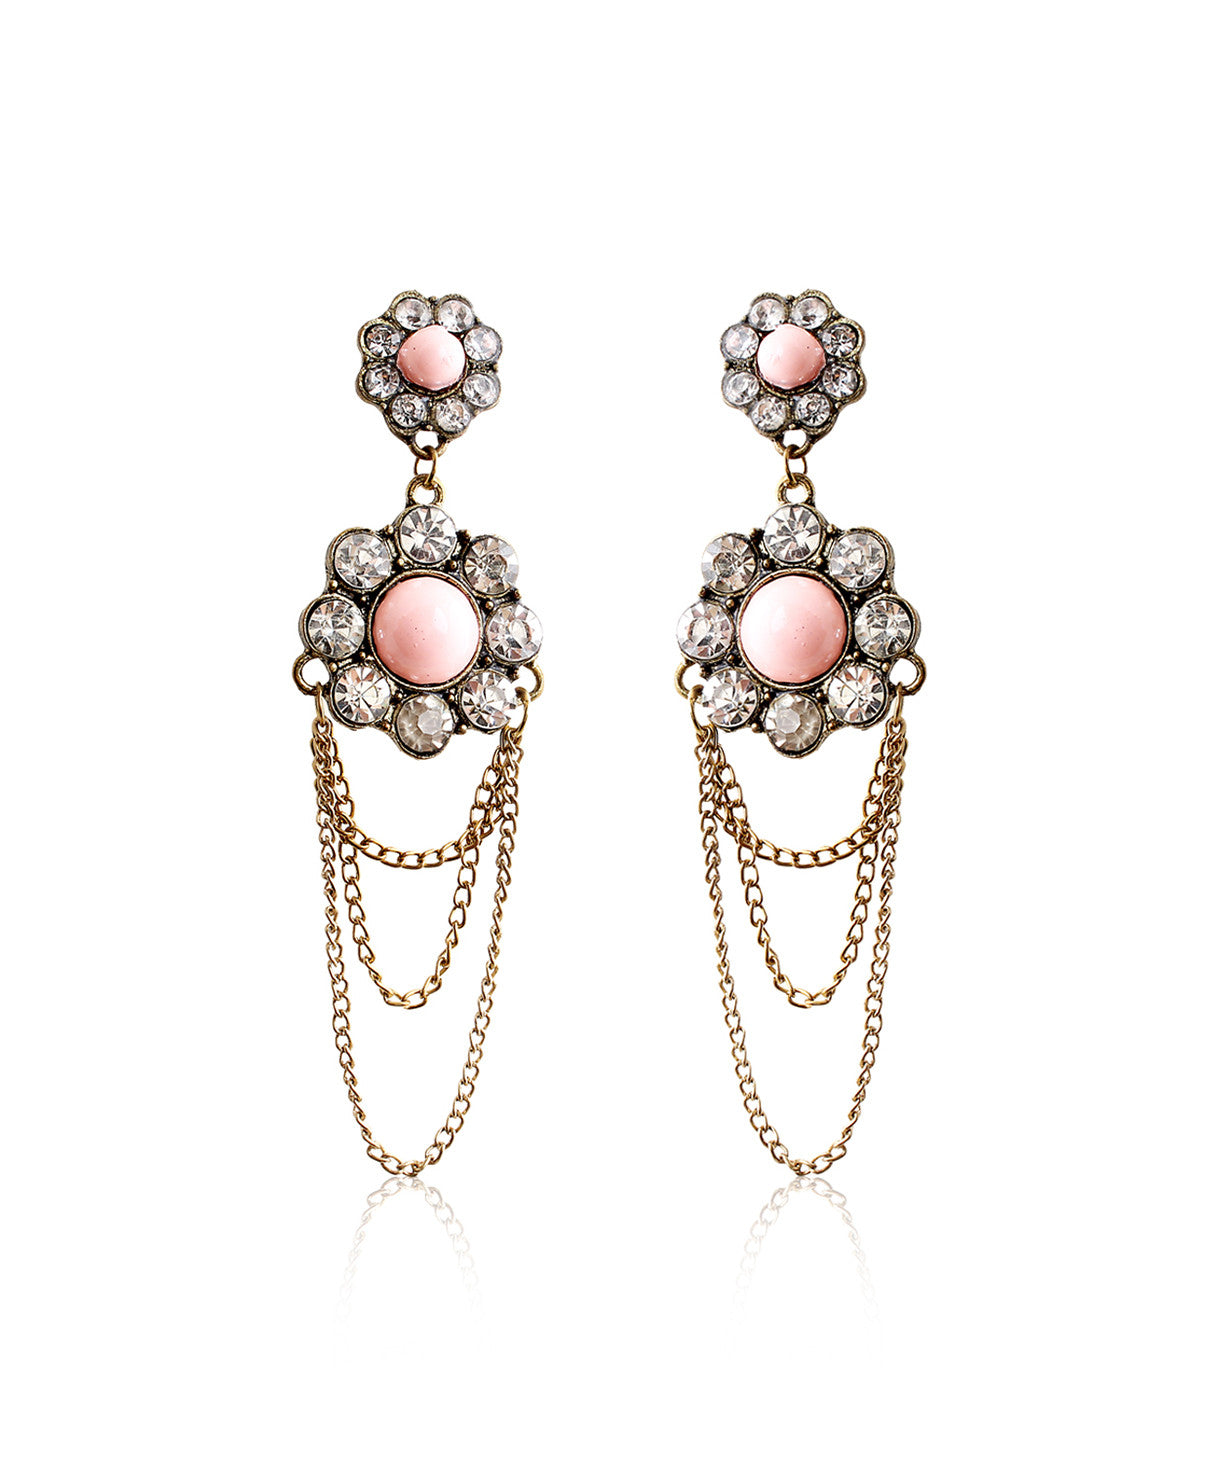 Uptownie X Infuzze-Silver Toned Floral Stone-Studded Drop Earrings - Uptownie